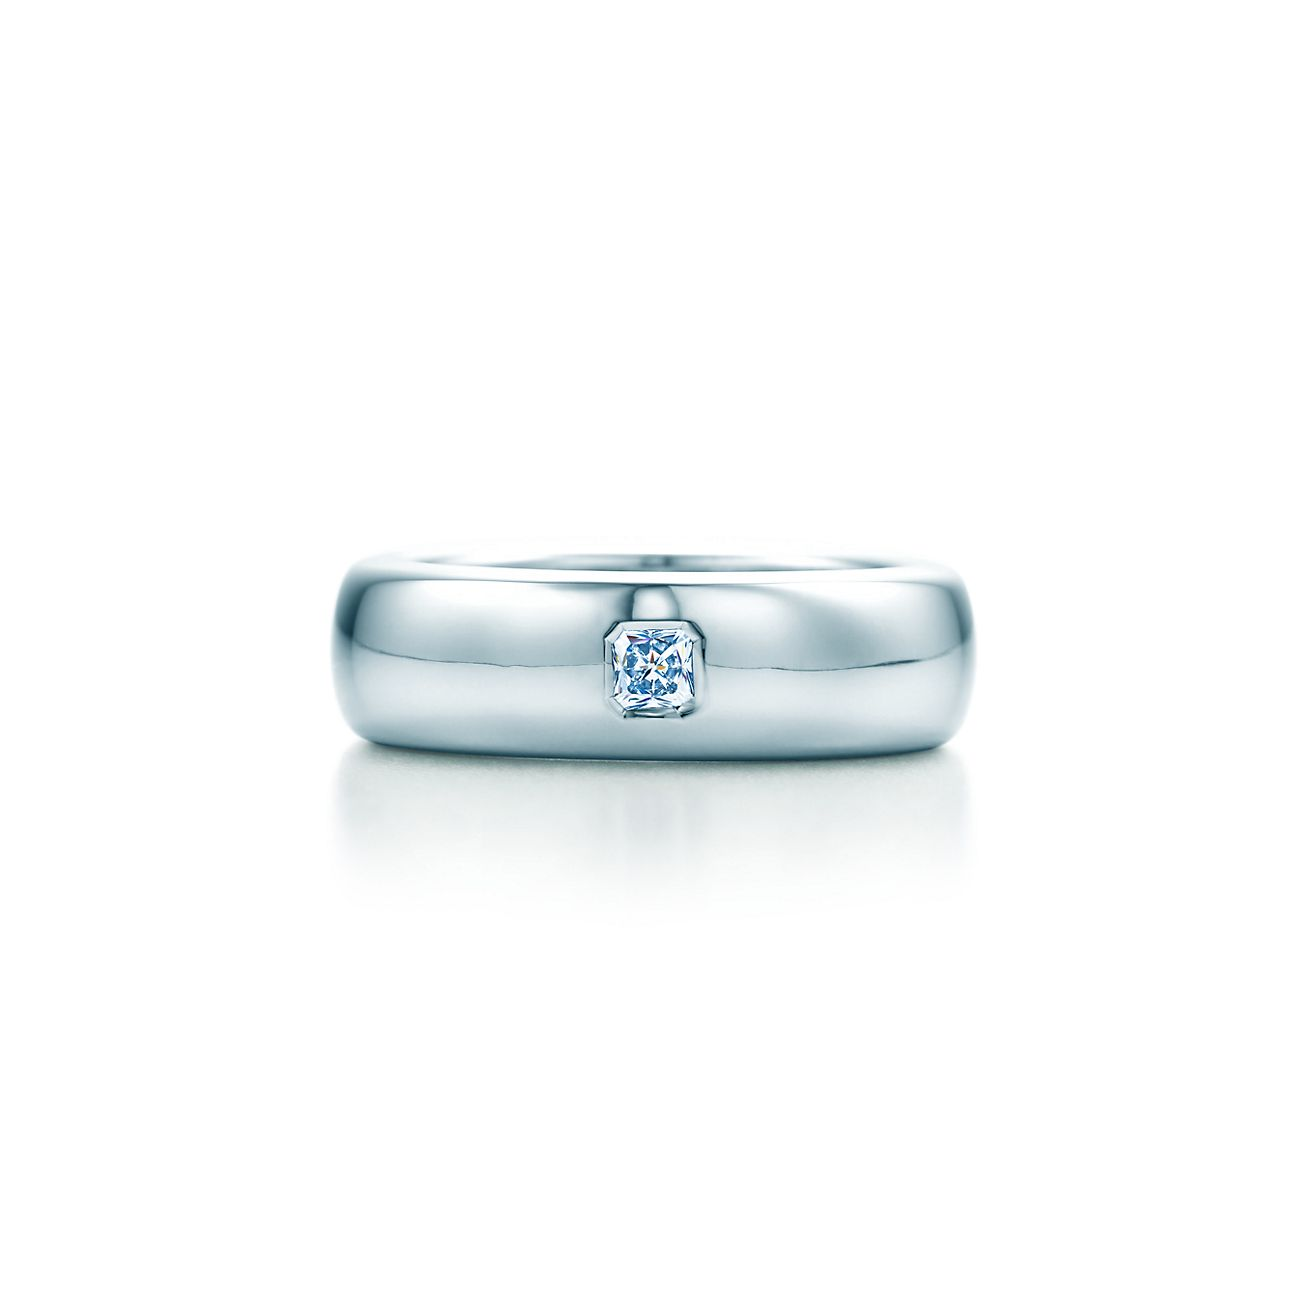 lucida 174 band ring with a in platinum 6mm wide